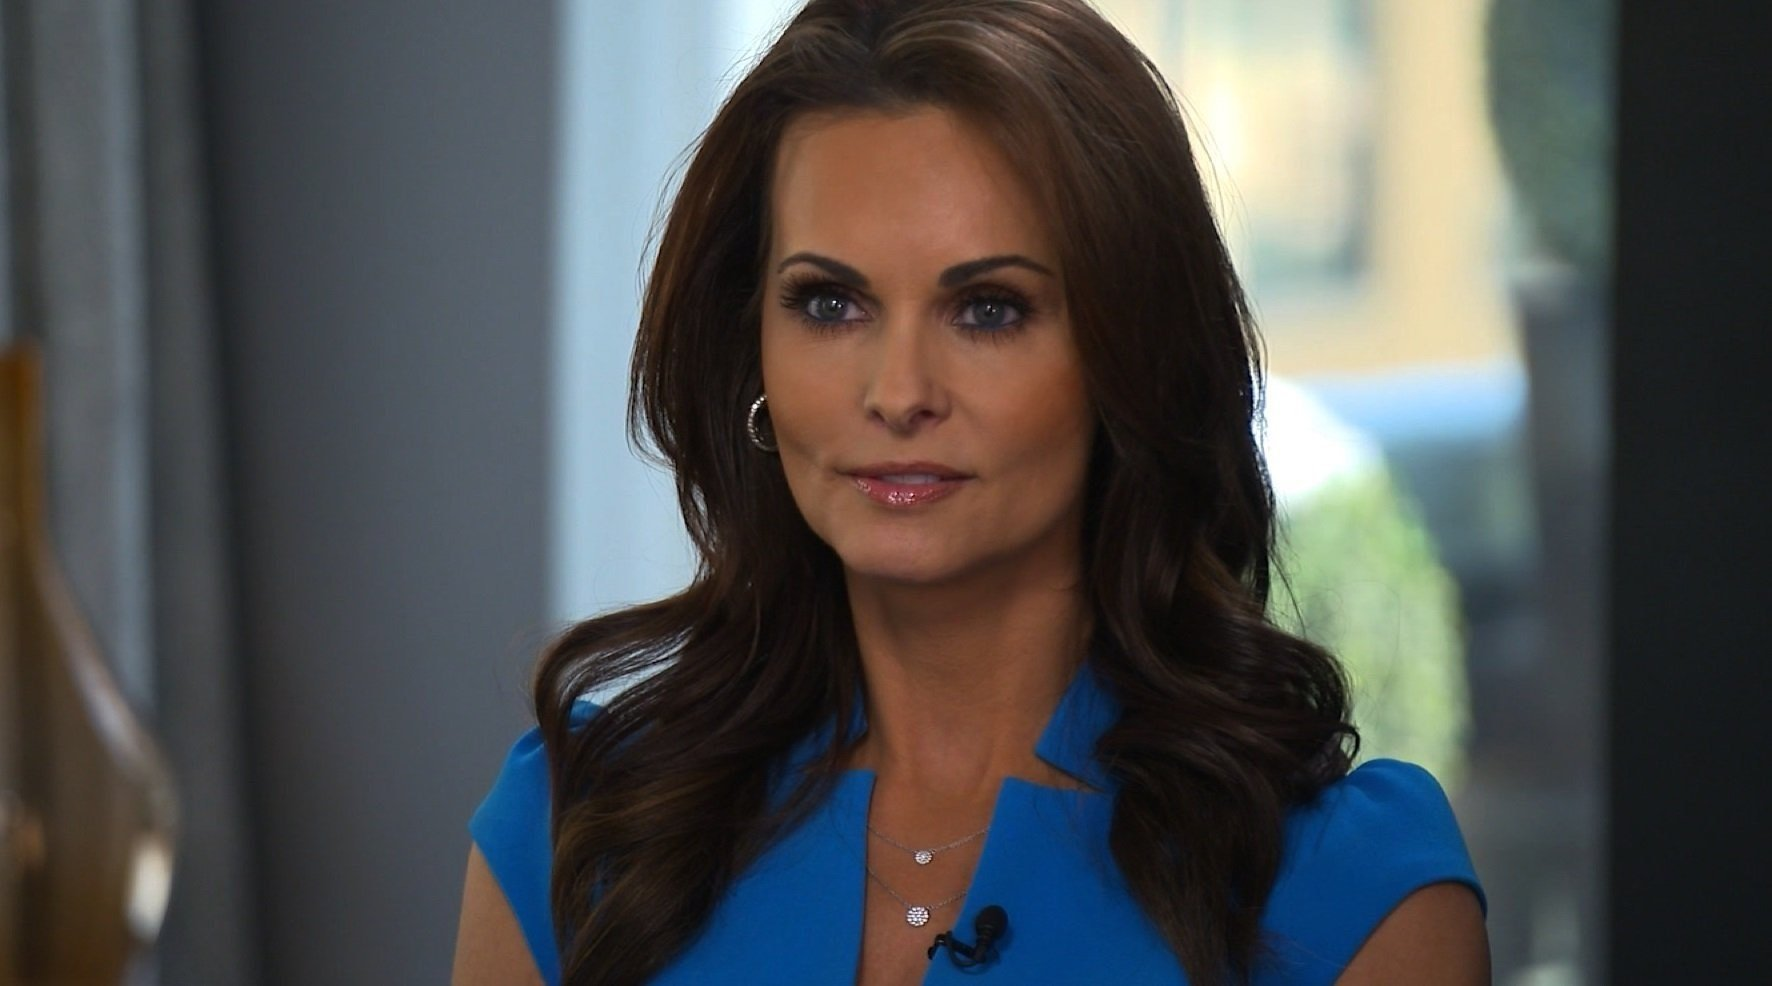 Karen McDougal sat down with Anderson Cooper in an exclusive interview on CNN.